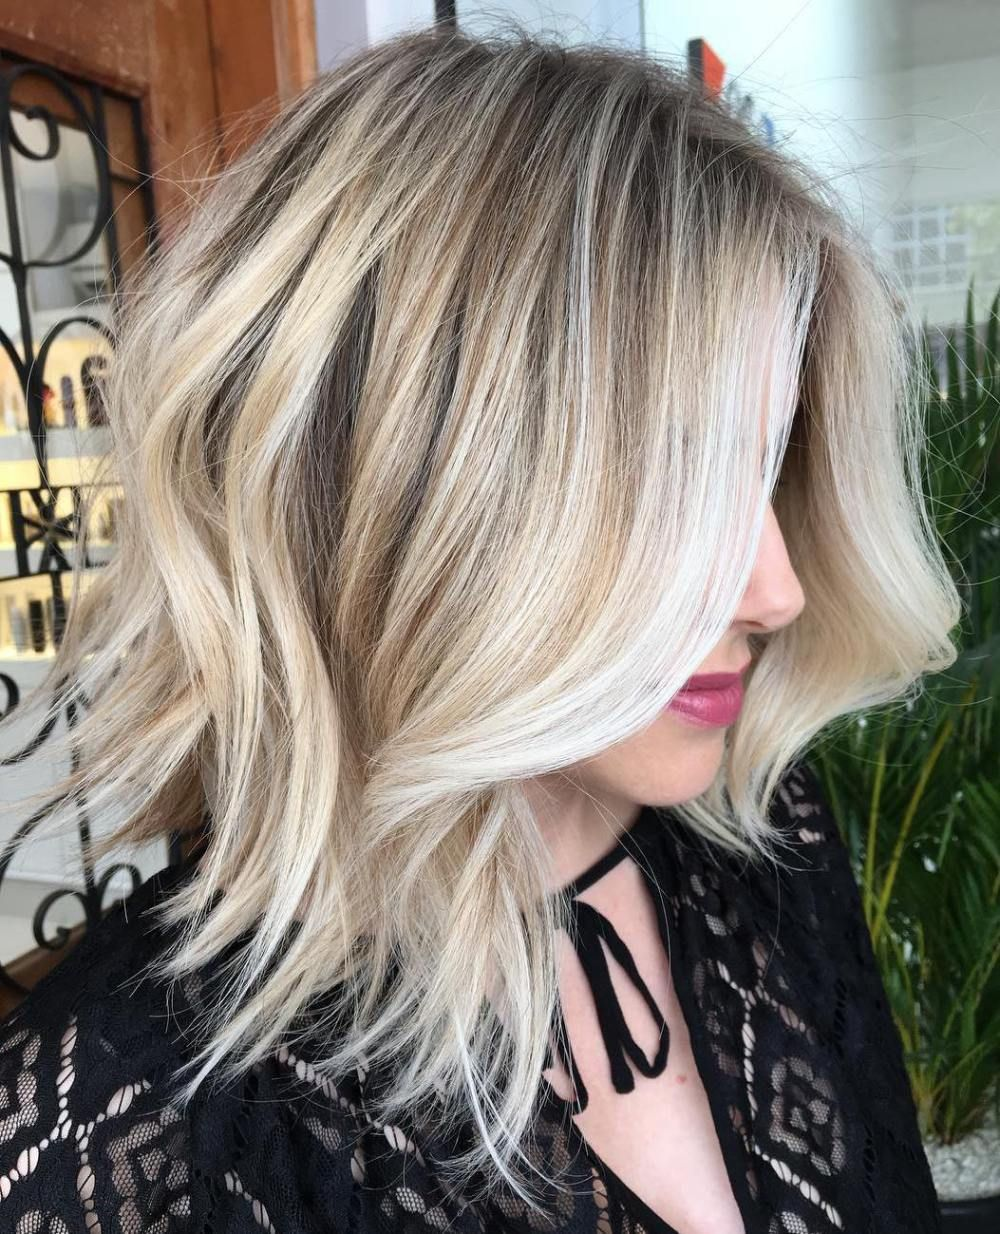 51 Trendy Bob Haircuts to Inspire Your Next Cut forecasting